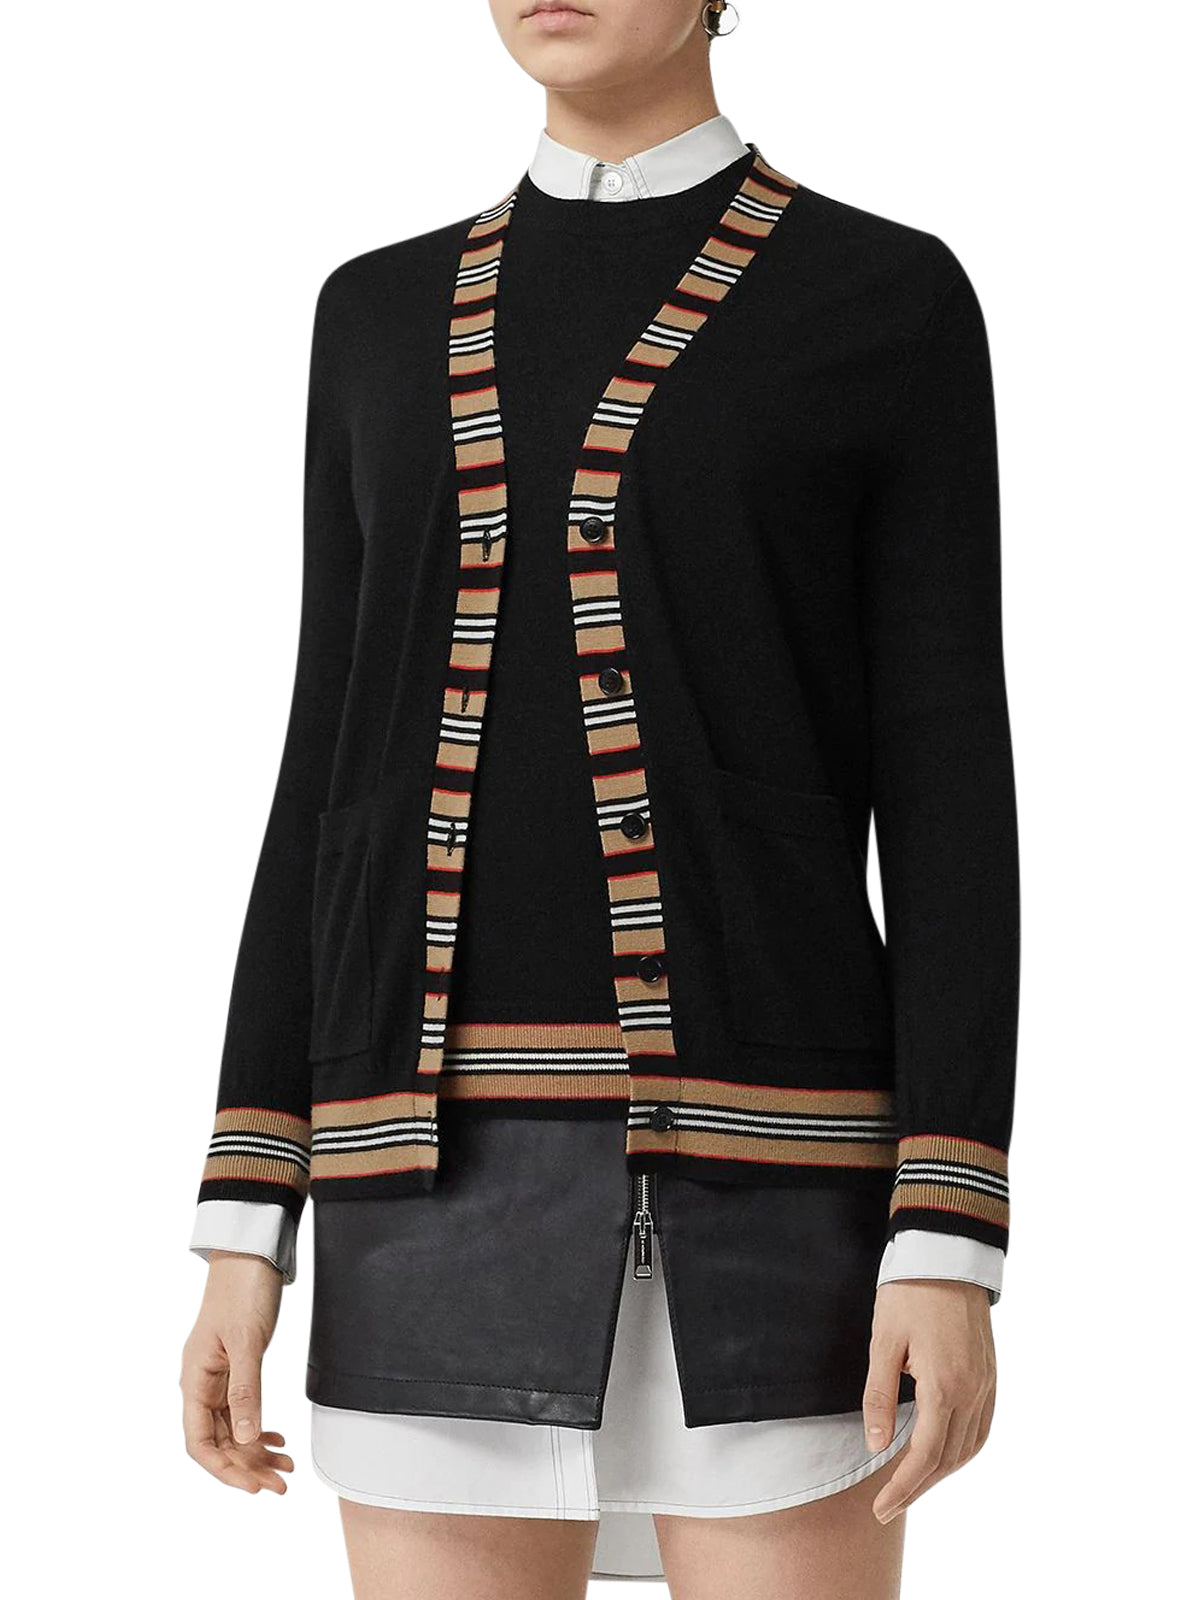 CARDIGAN WITH ICONIC DETAILS